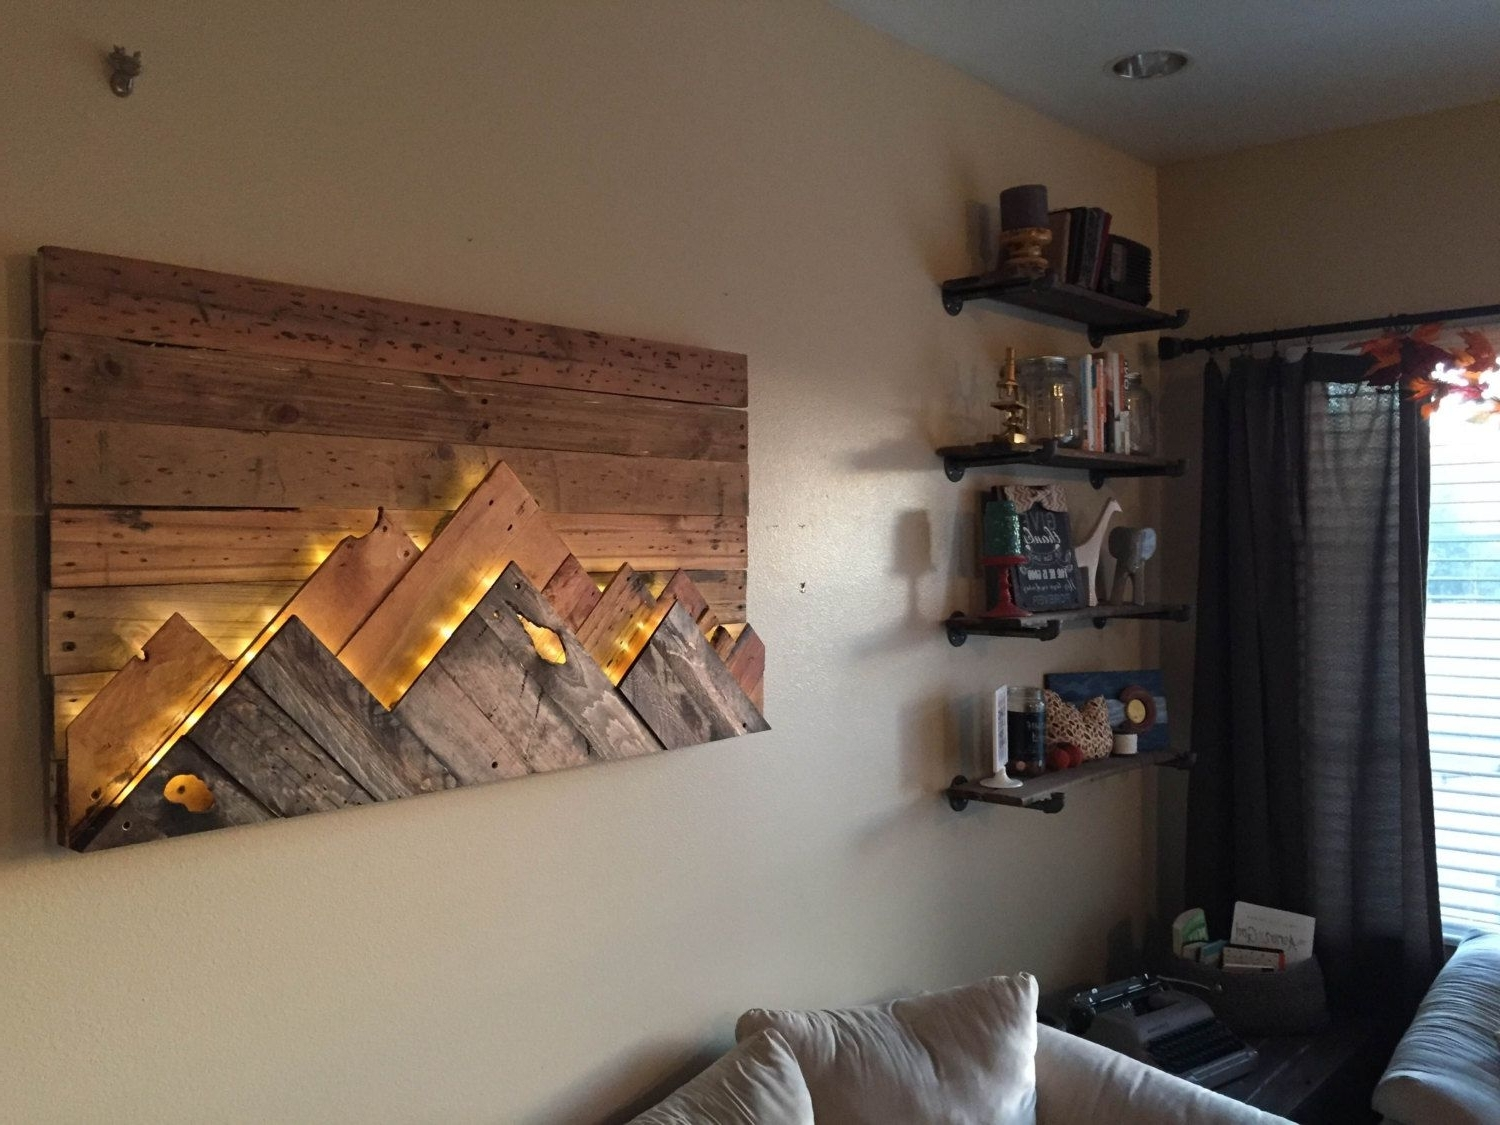 Mountain Range, Ranges And Walls Intended For Trendy Wall Accents With Pallets (View 6 of 15)